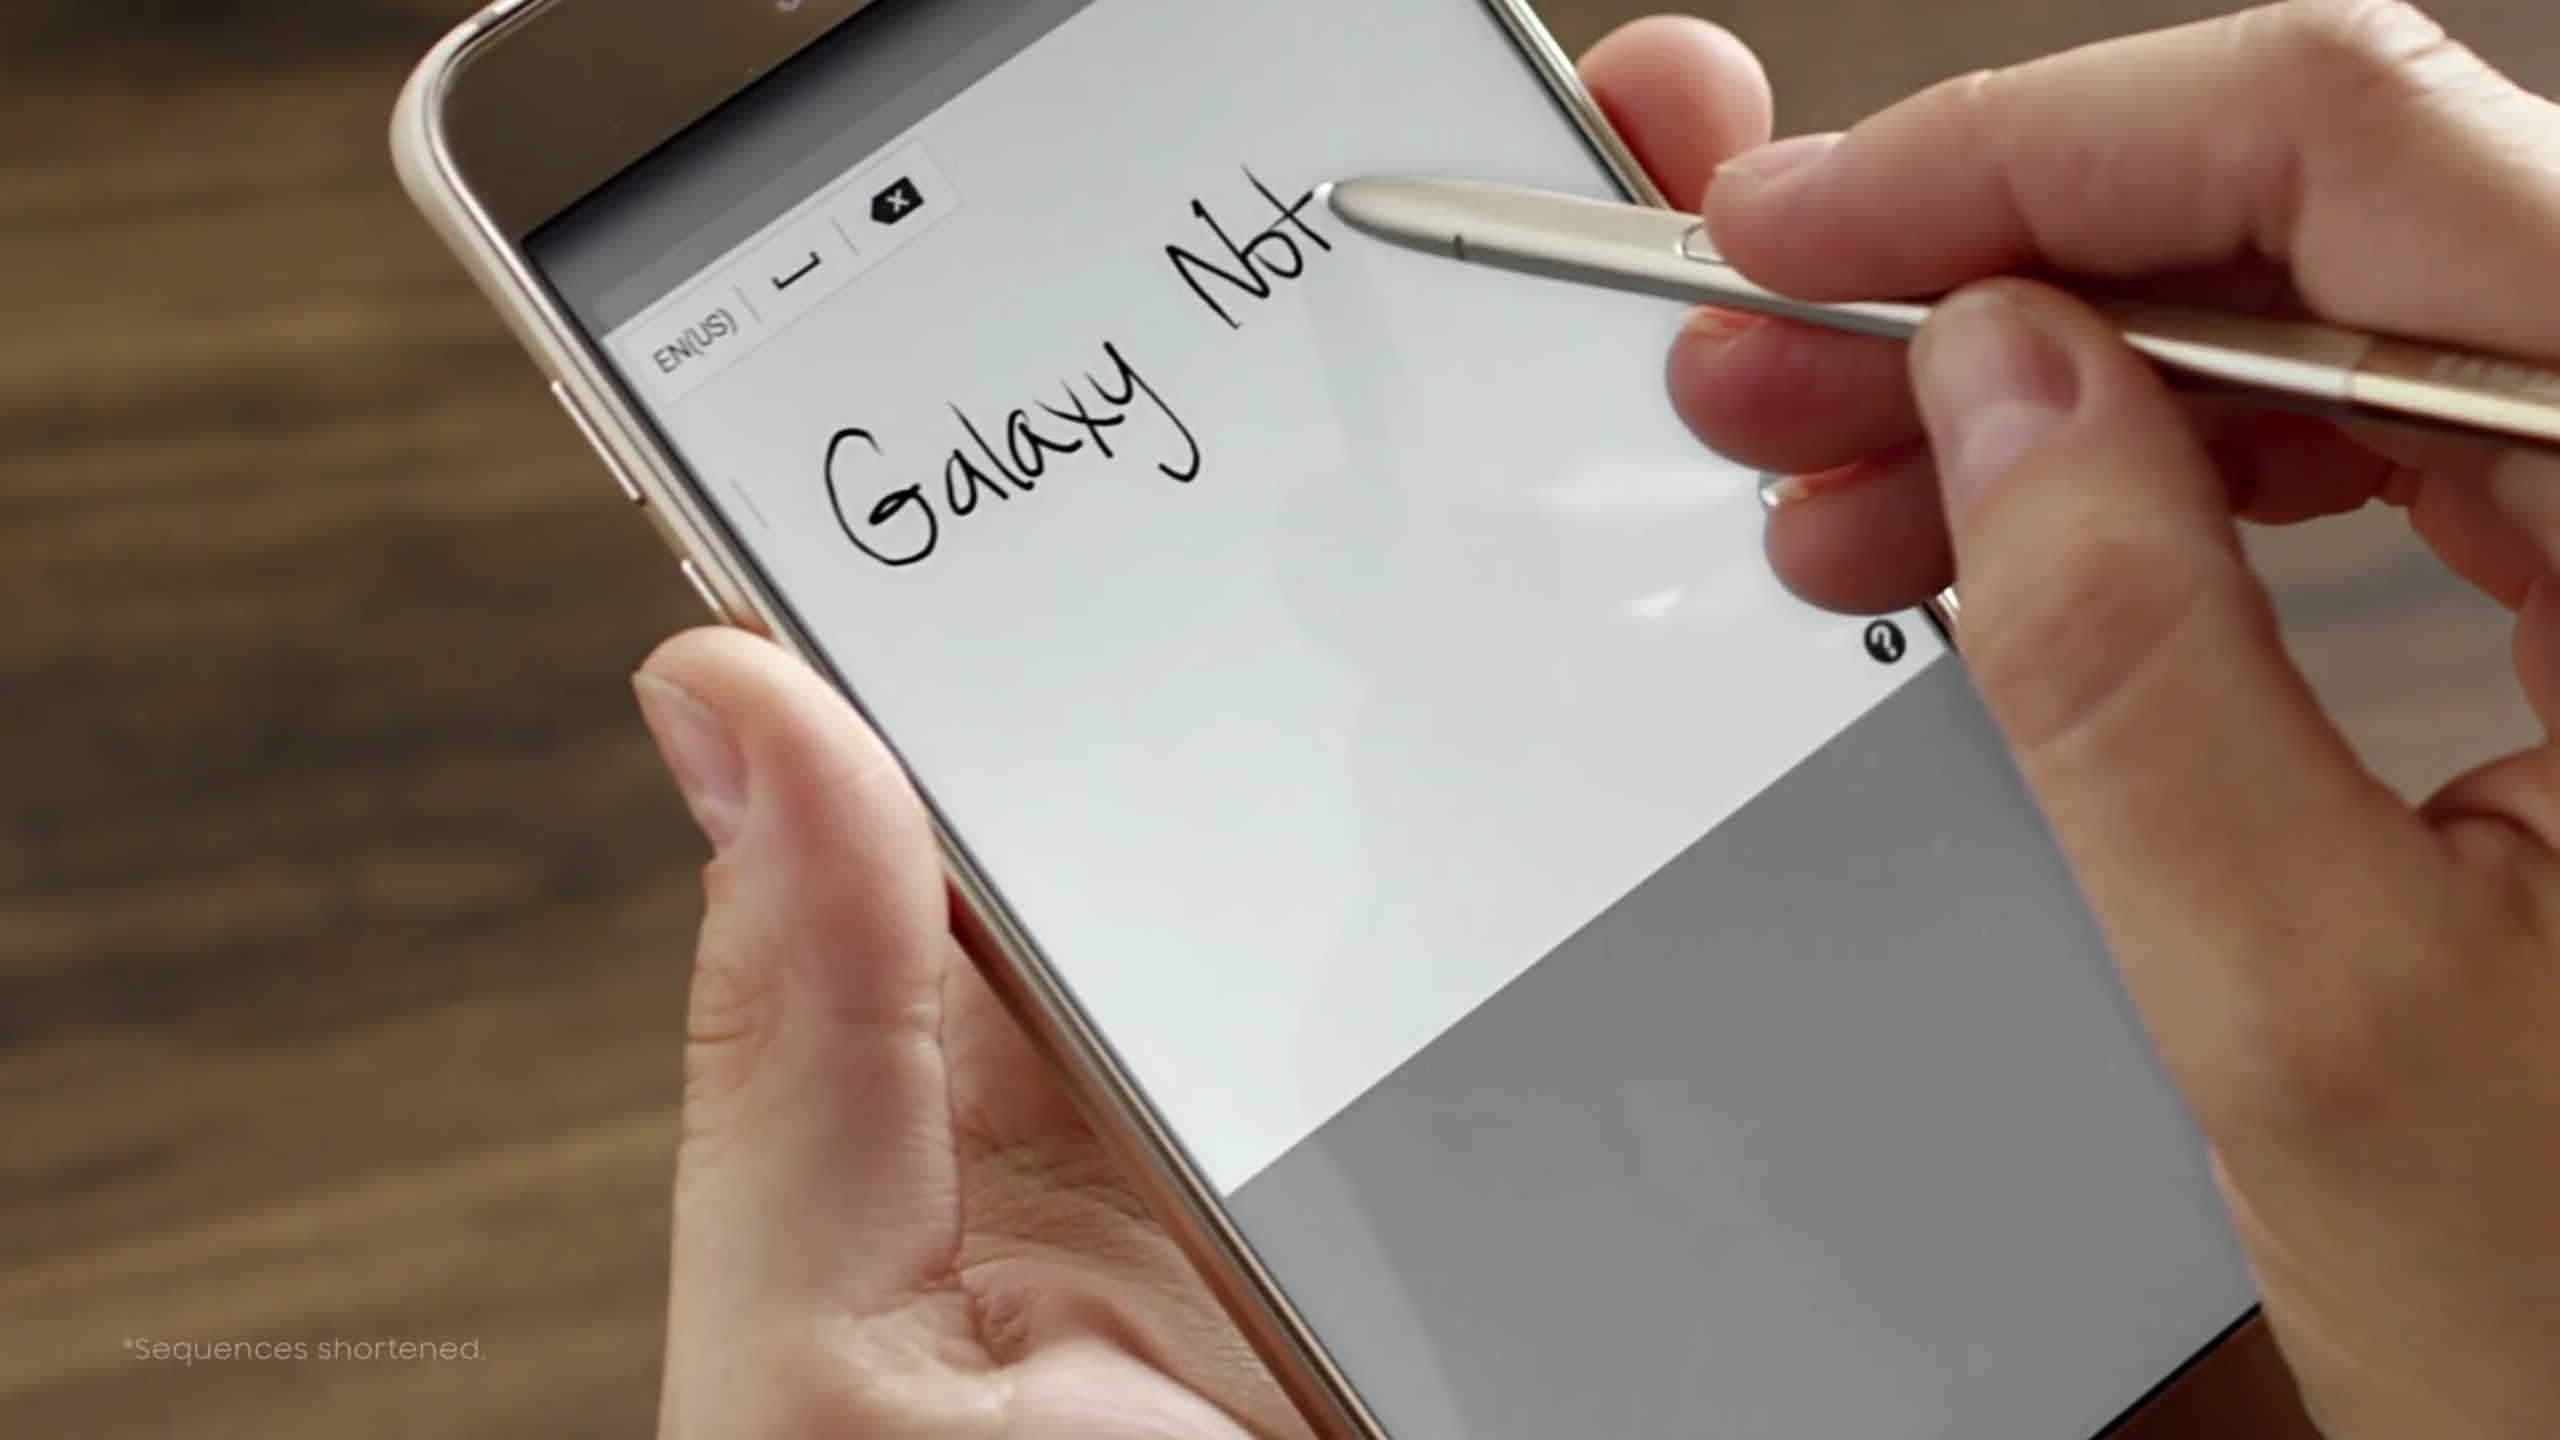 Samsung, the S Pen, and Steve Jobs: Intuitiveness Re-examined